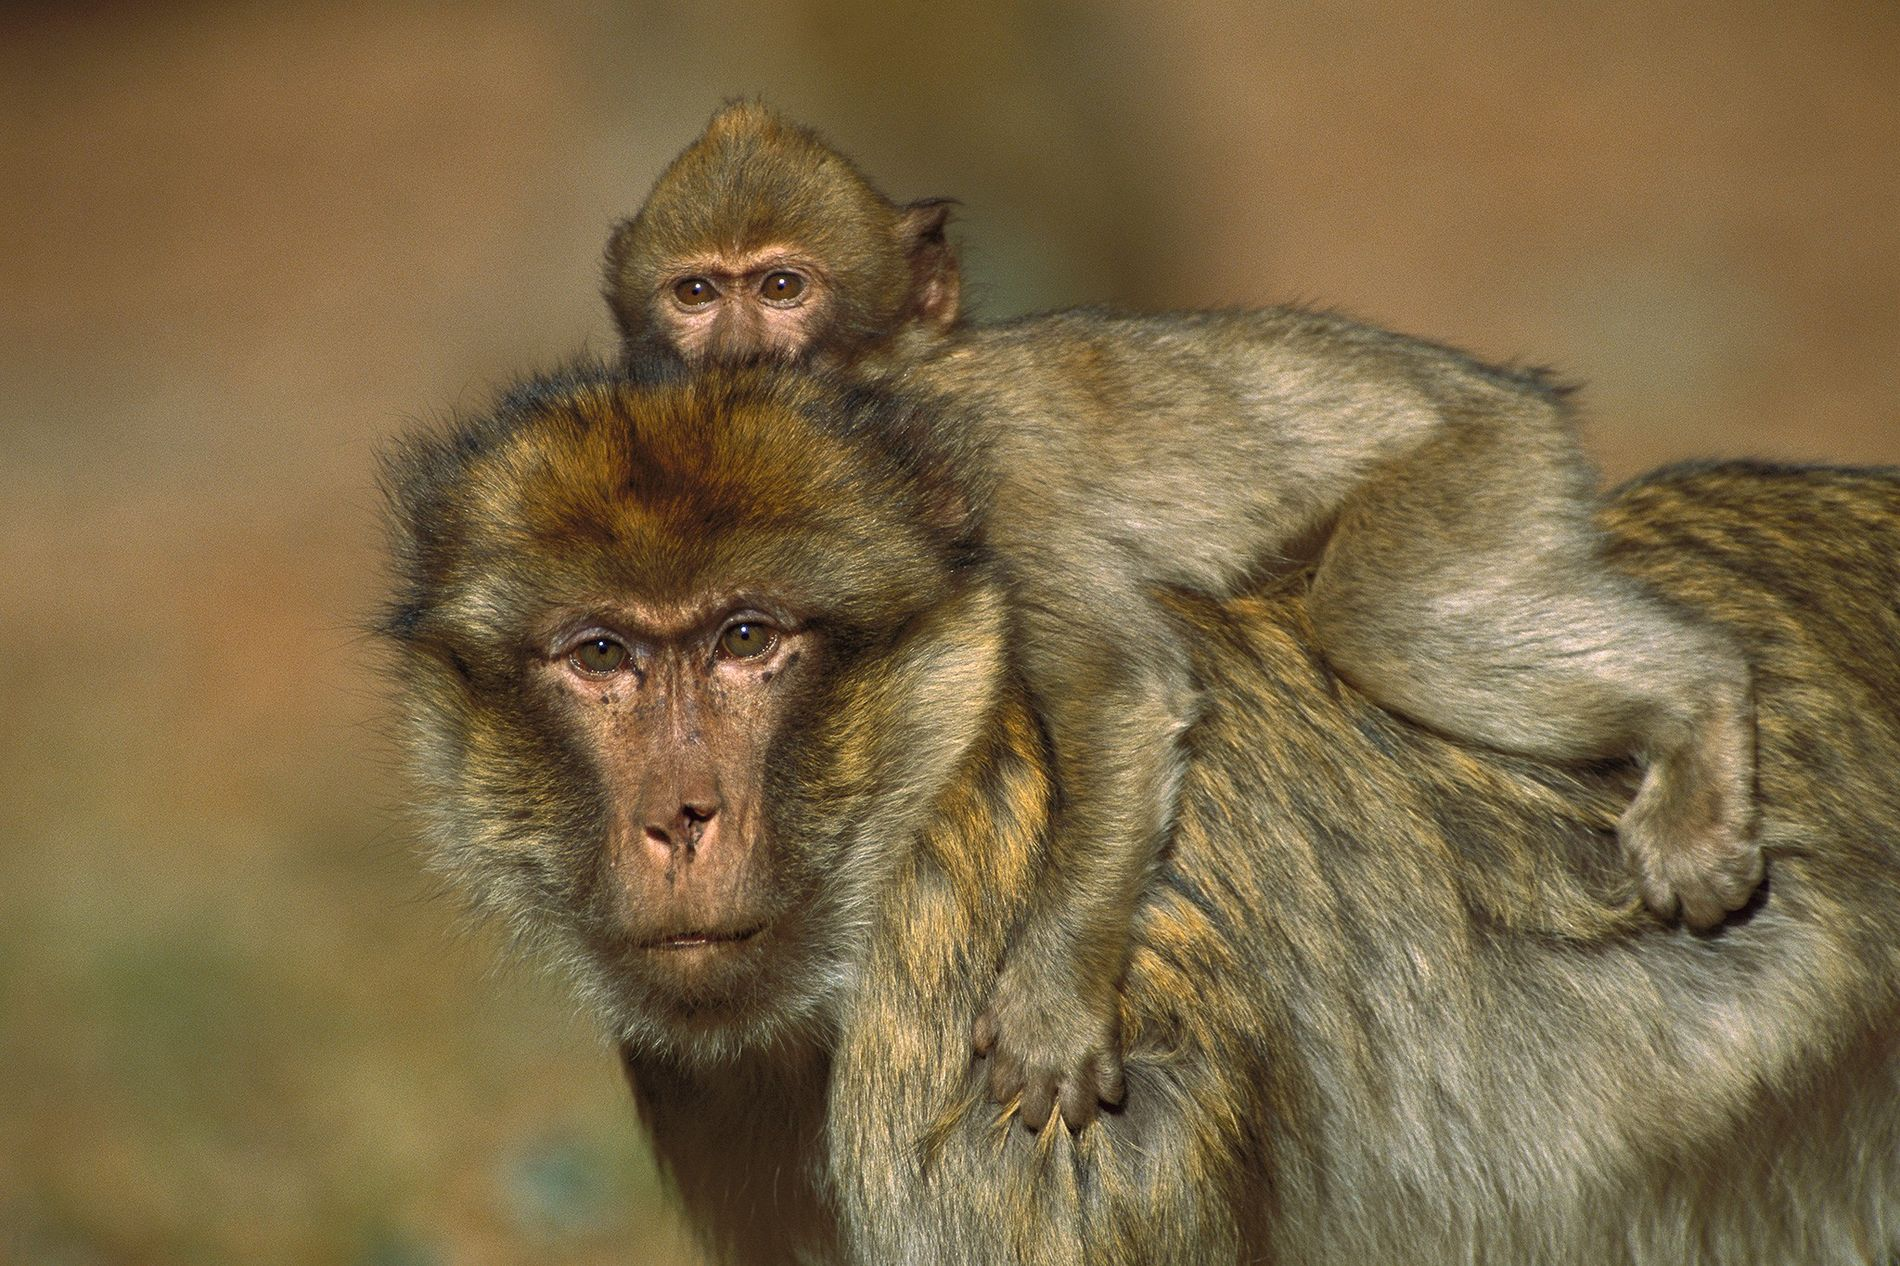 For male barbary macaques, carrying an infant helps build social bonds with other males. Sometimes, a macaque will carry around any available infant, even if it's not his own.